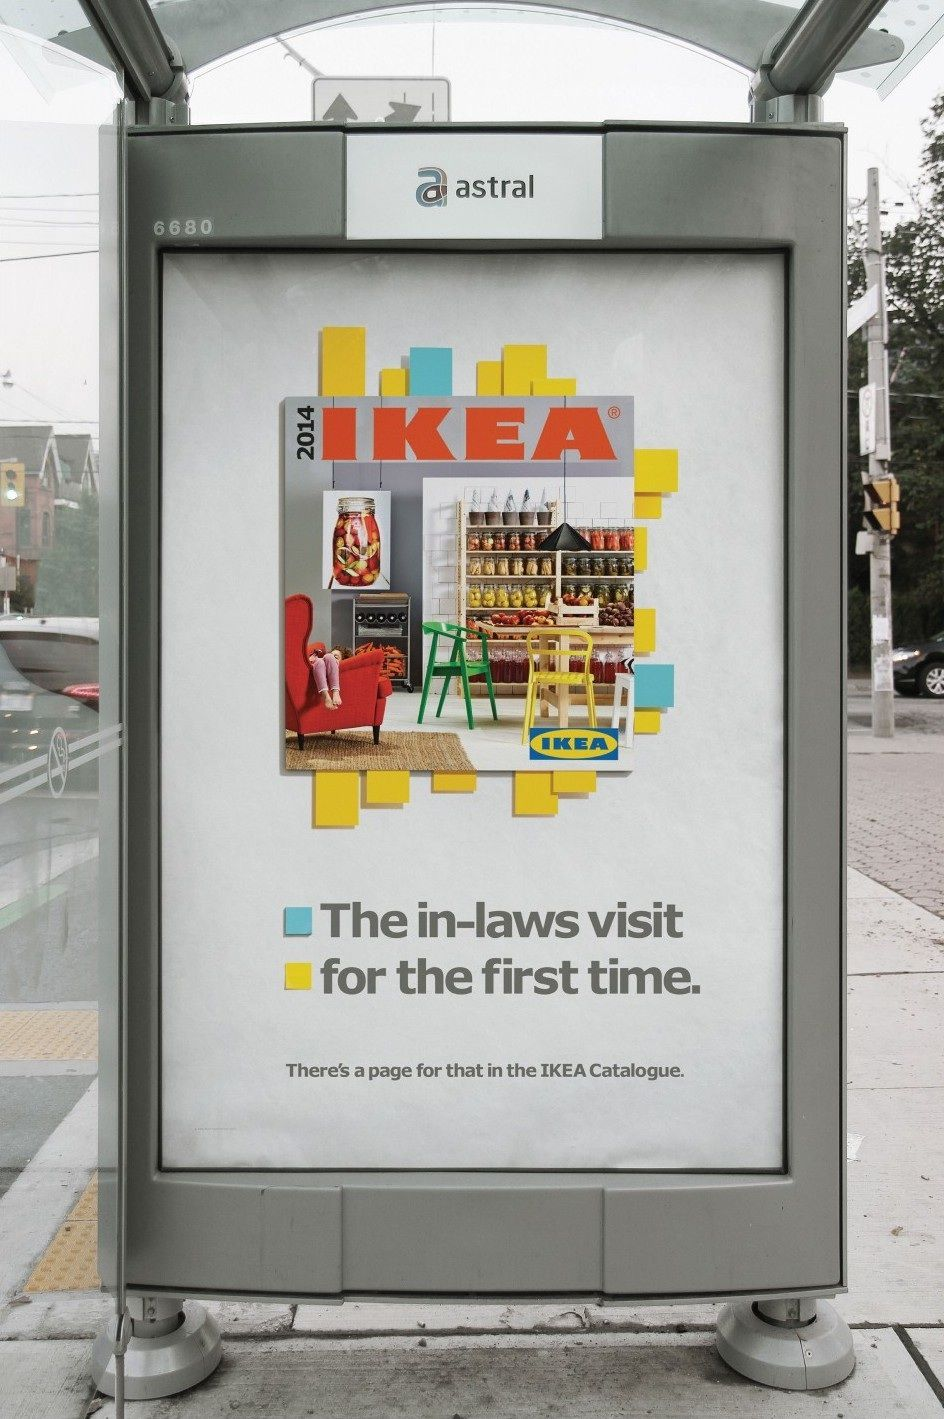 IKEA: In-laws | Outdoor AD | Pinterest